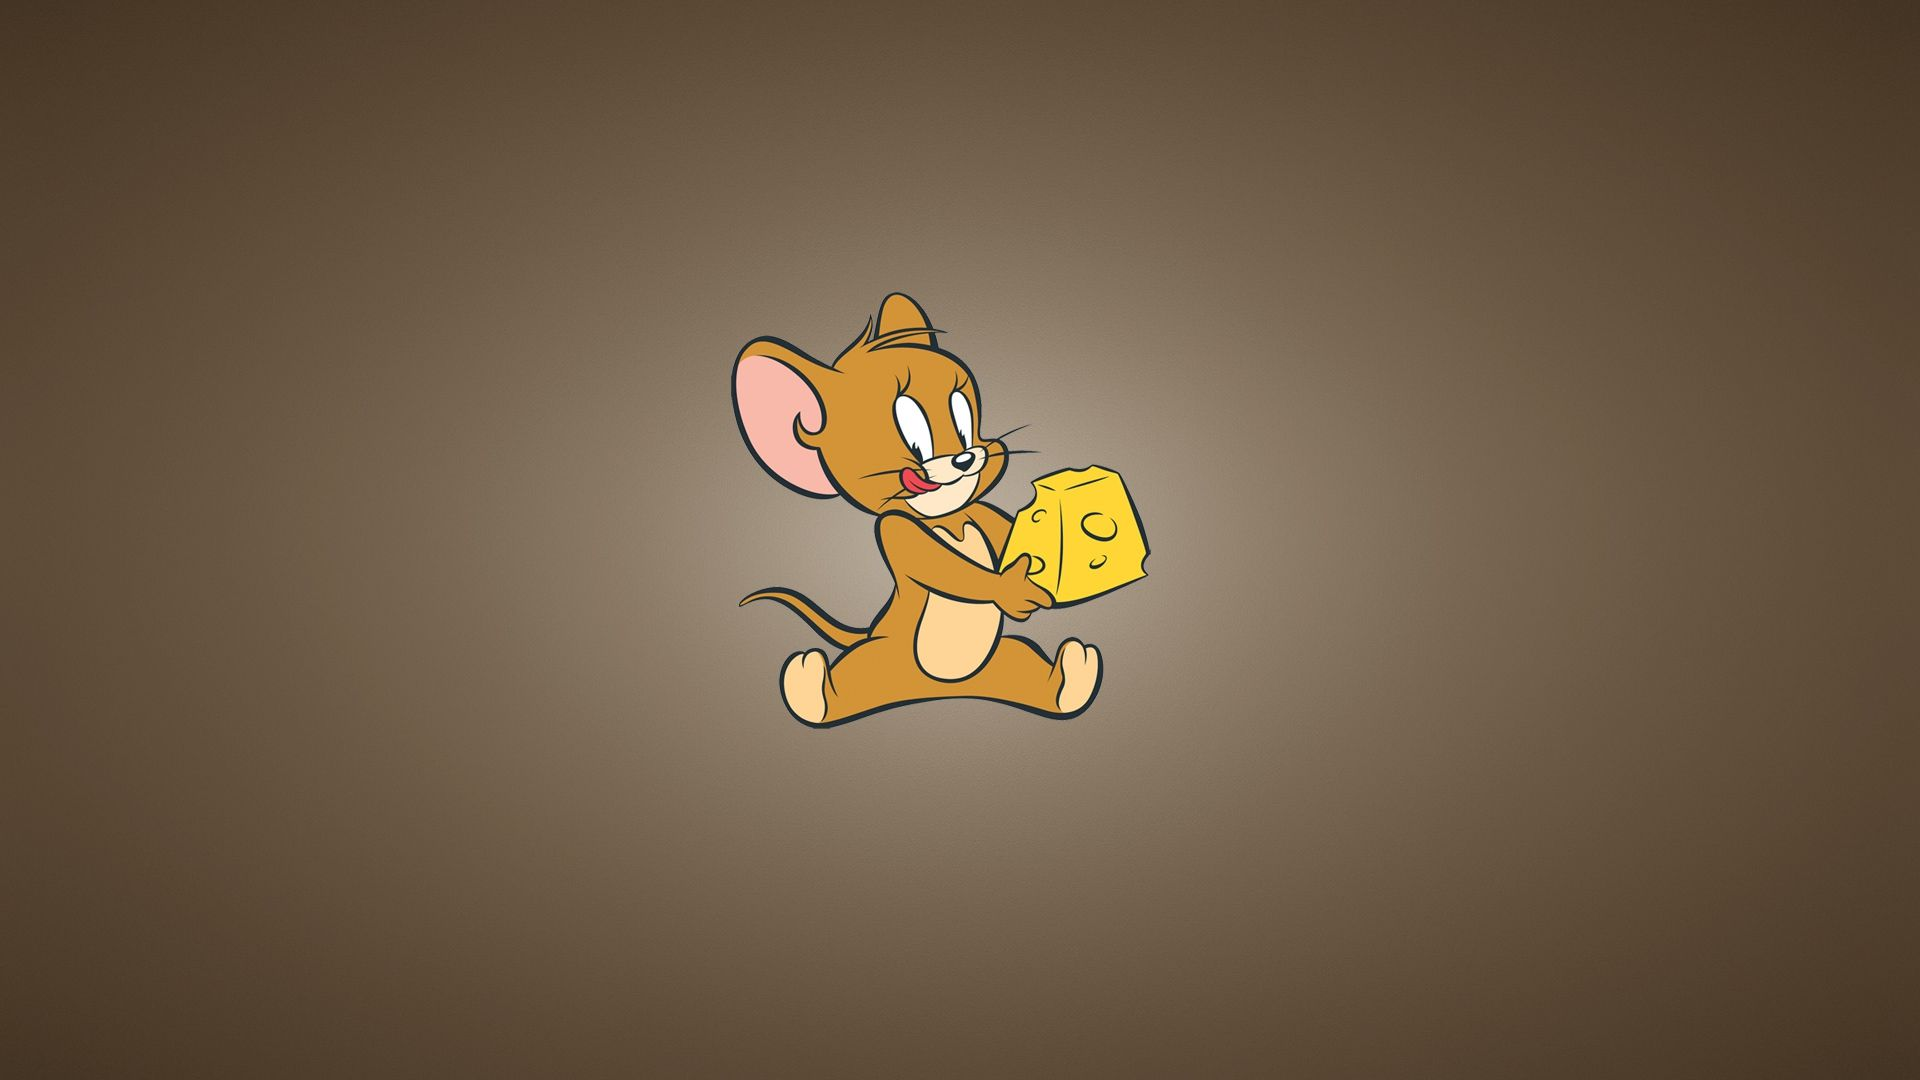 1920x1080 Wallpaper Tom And Jerry Cheese Mouse Minimalism Tom And Jerry Wallpapers Cartoon Wallpaper Tom And Jerry Full screen 1080p tom and jerry hd